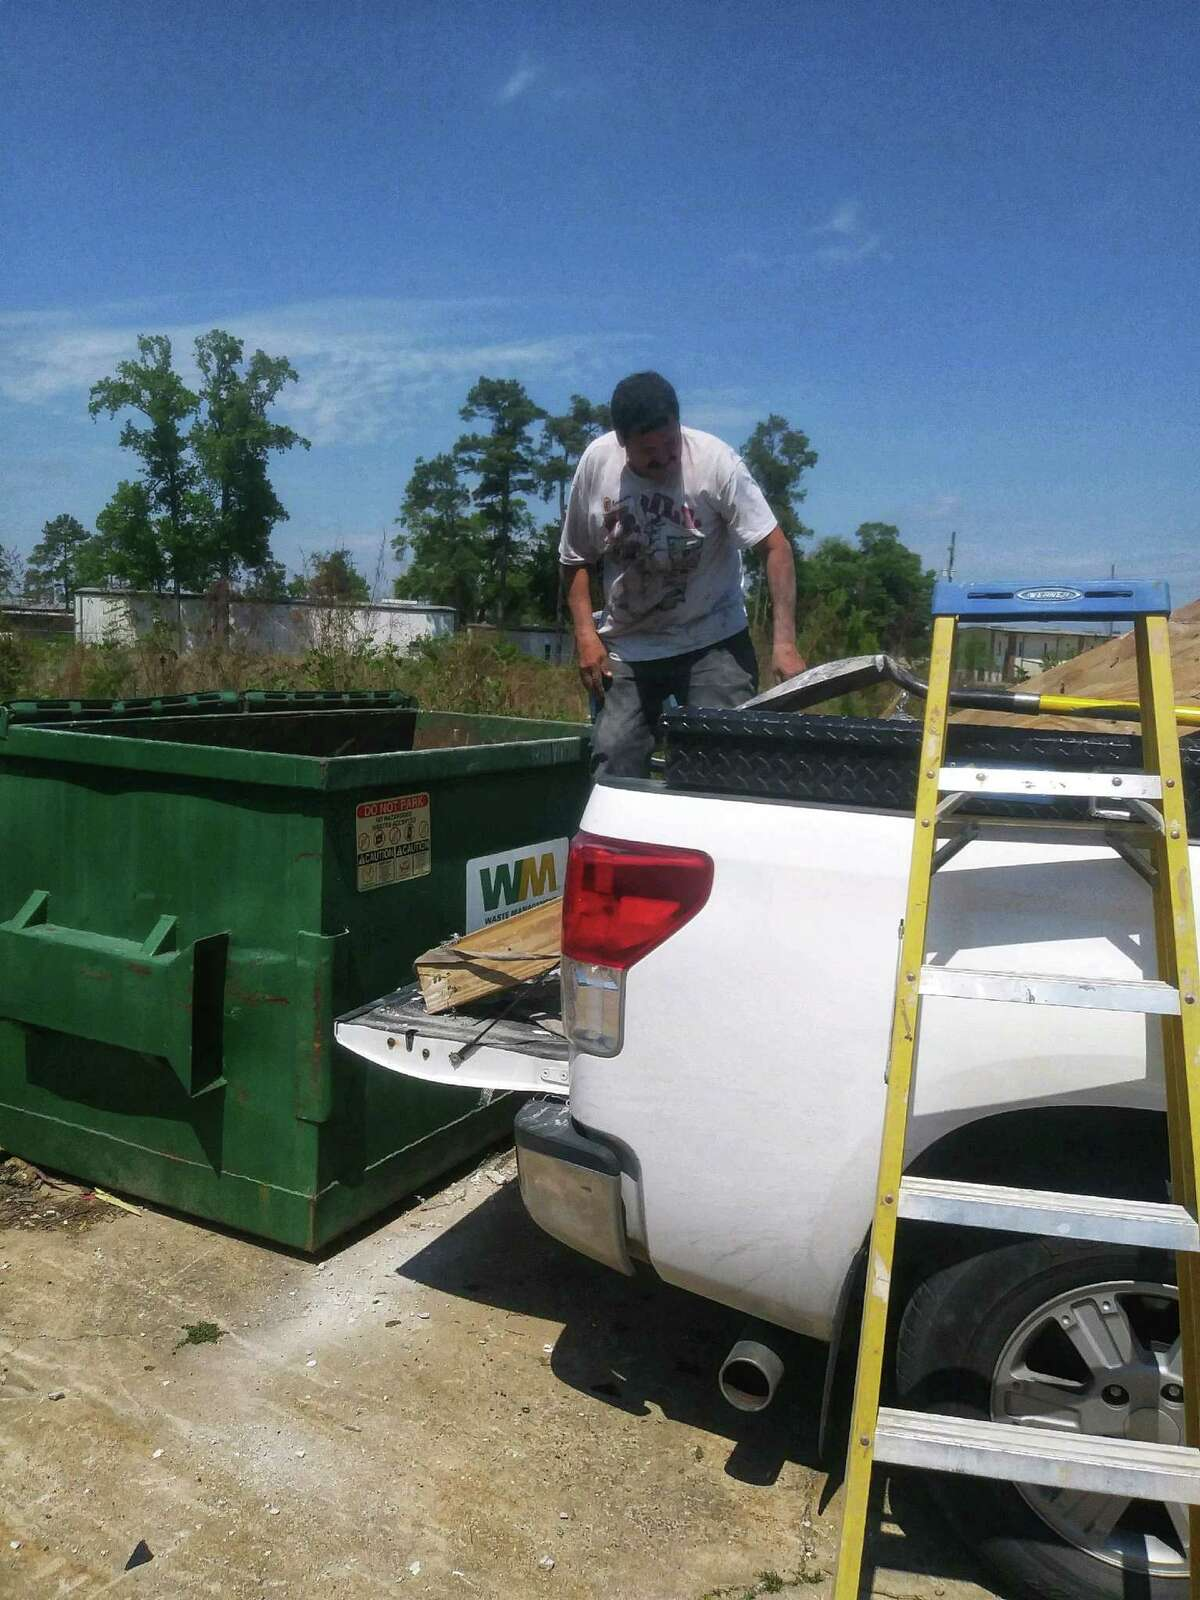 Saul Olguín dumps debris in a garbage tank after finishing a job as a day laborer on March 26, 2020, in Houston.